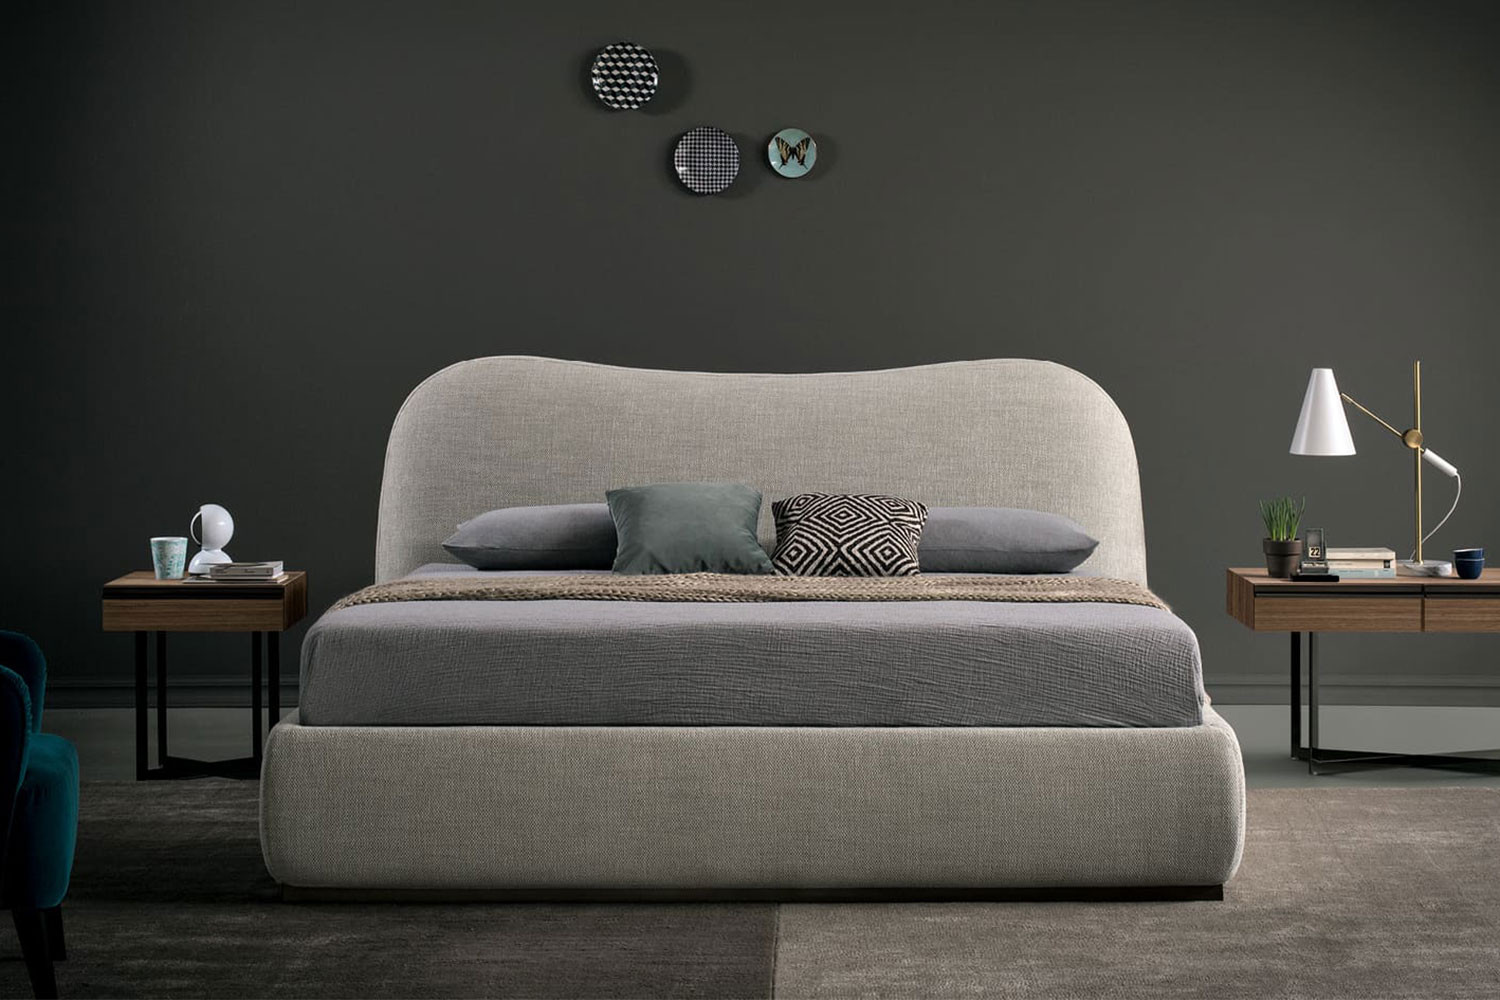 Upholstered king size bed with curved headboard, size 160x200 cm, 180x200 cm or 200x200 cm